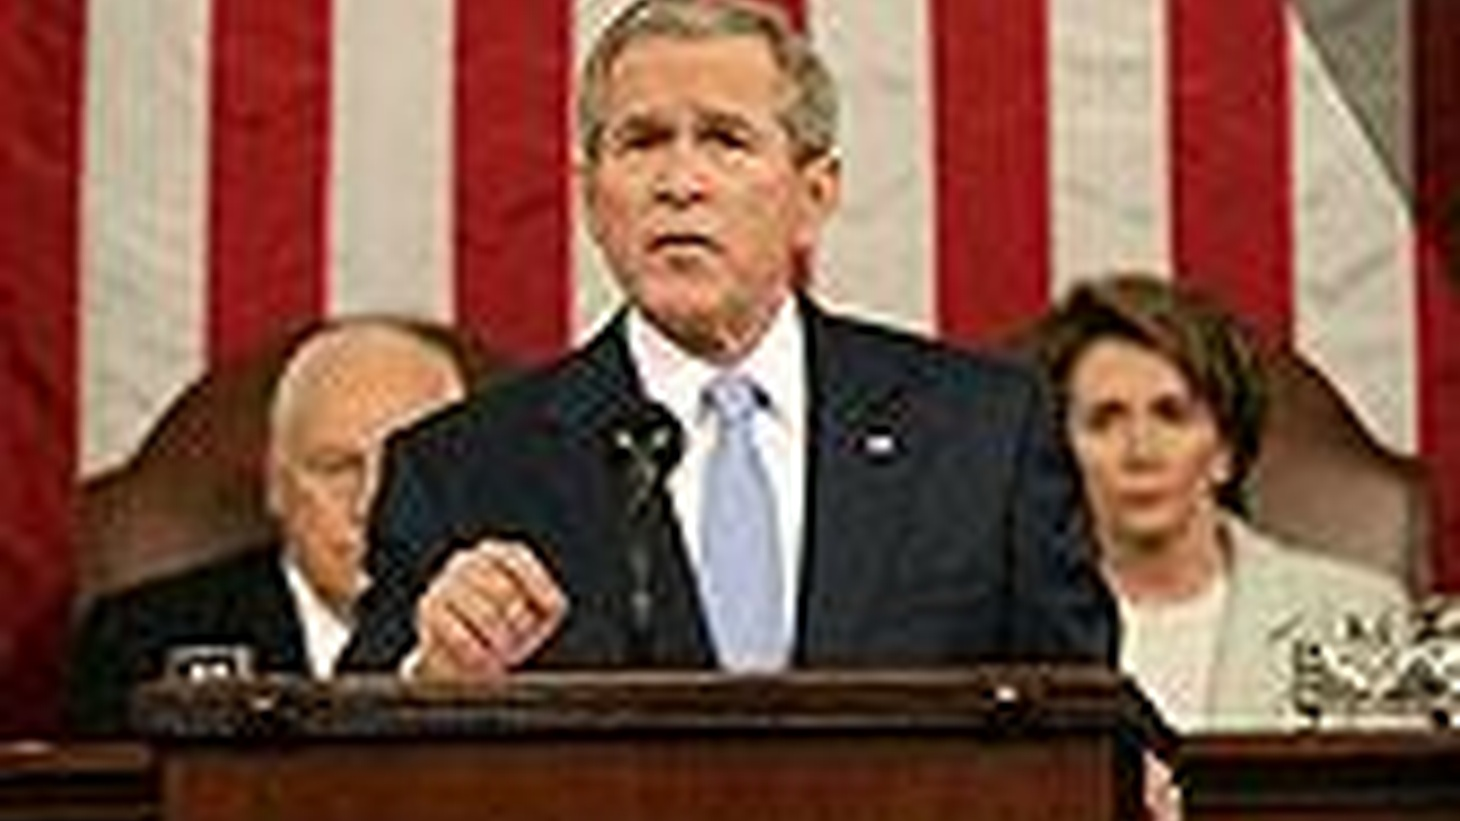 """With Congress now dominated by Democrats, last night's State of the Union speech was an opportunity to re-assert presidential authority. Will proposals on health insurance, immigration and energy get a real hearing or will the war in Iraq drown out everything else? Plus, the Senate Foreign Relations Committee says no to the president, and on Reporter's Notebook, was Louis """"Scooter"""" Libby a scapegoat for Karl Rove?"""